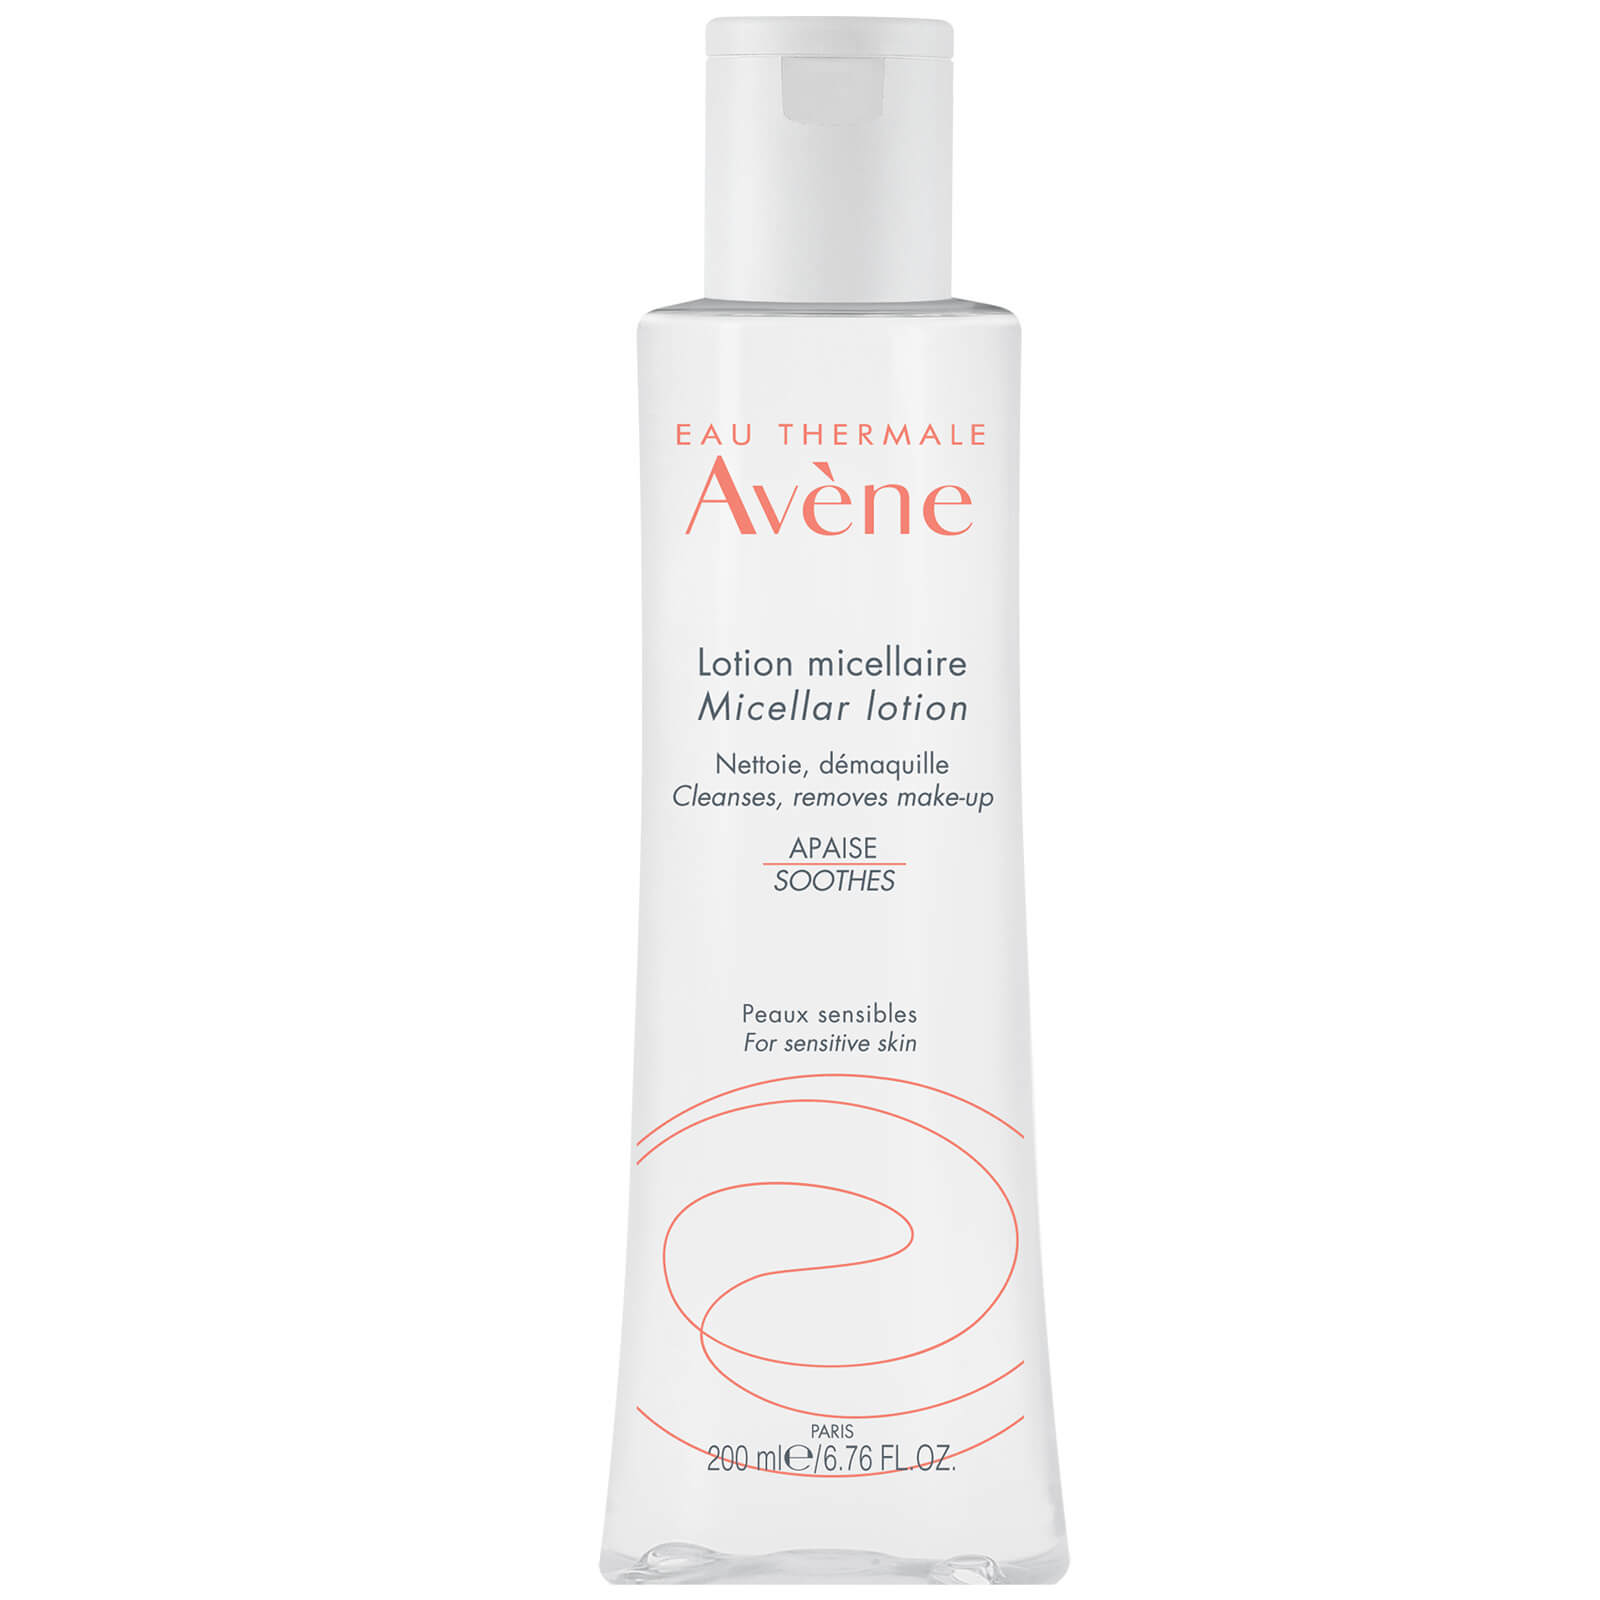 Купить Avène Micellar Lotion Cleanser and Make-Up Remover for Sensitive Skin 200ml